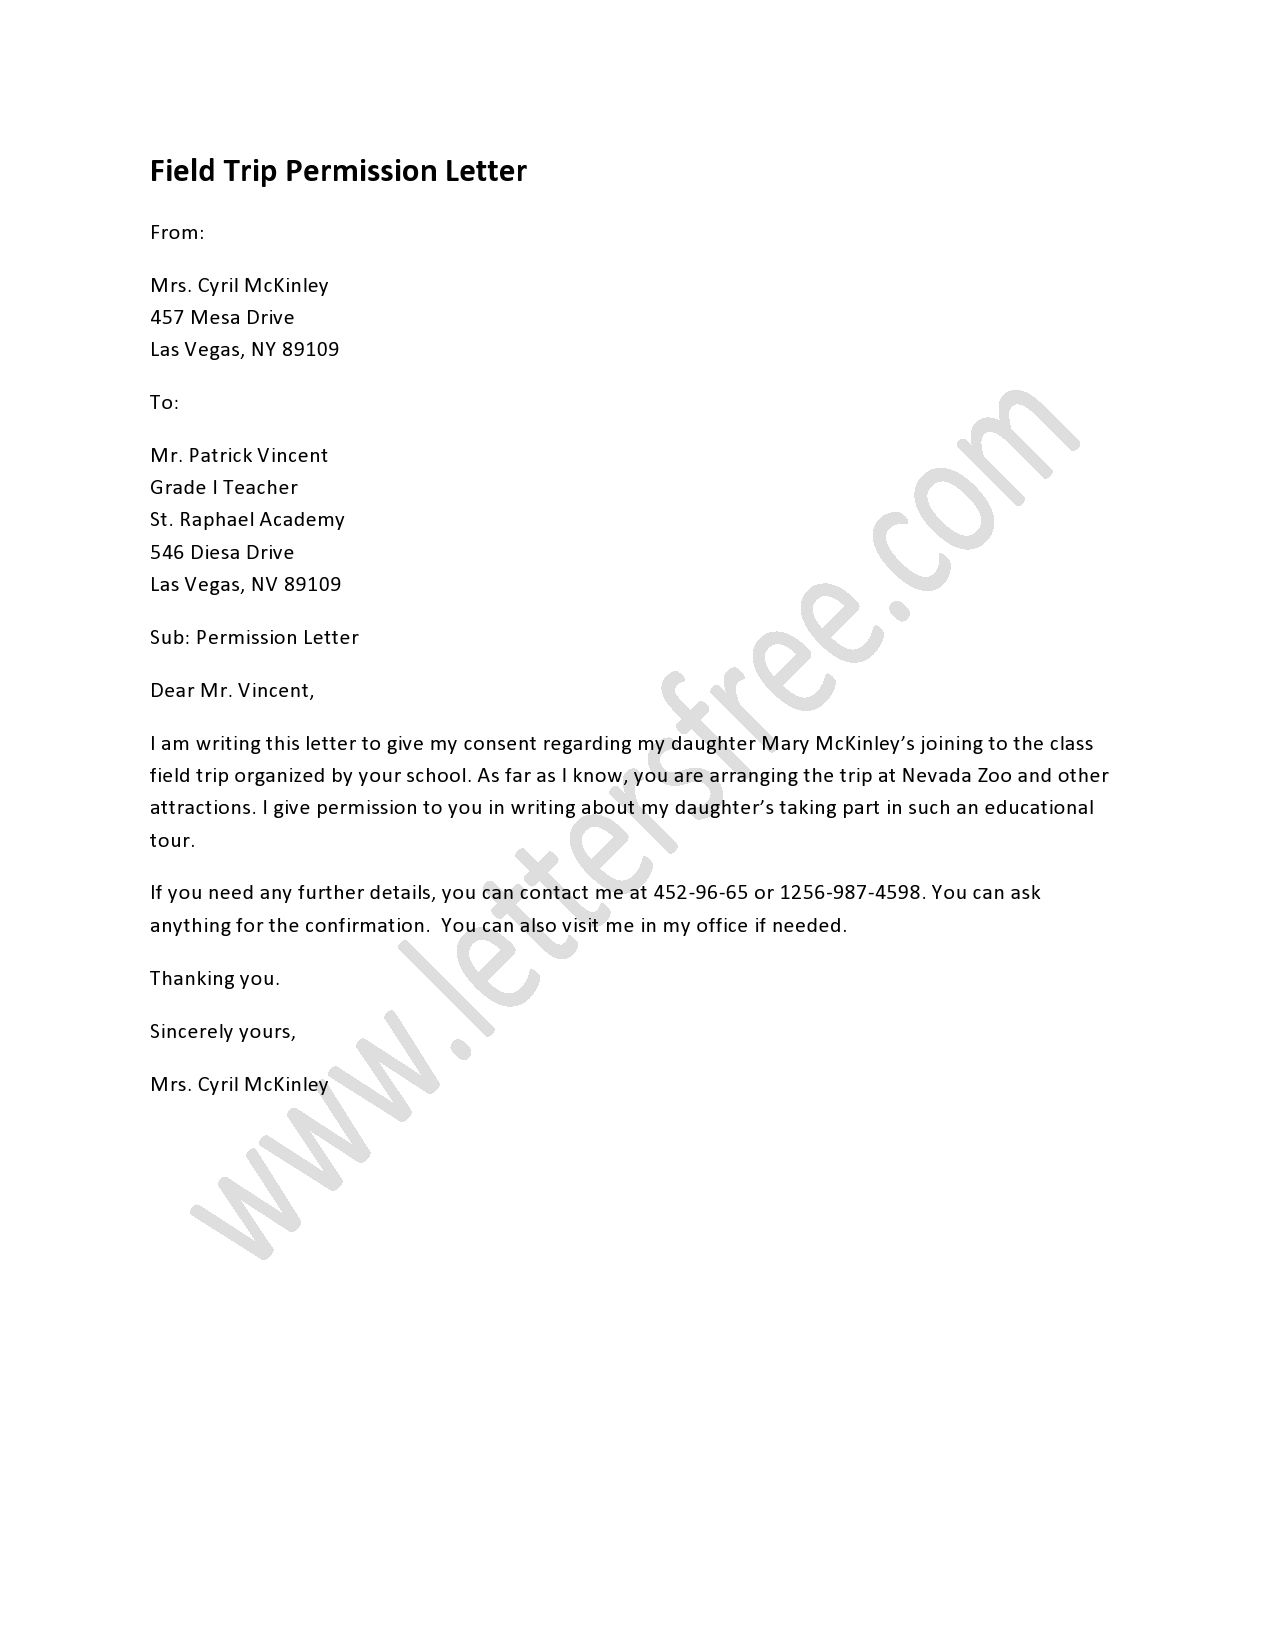 Field Trip Letter Template - Field Trip Permission Letter Pinterest